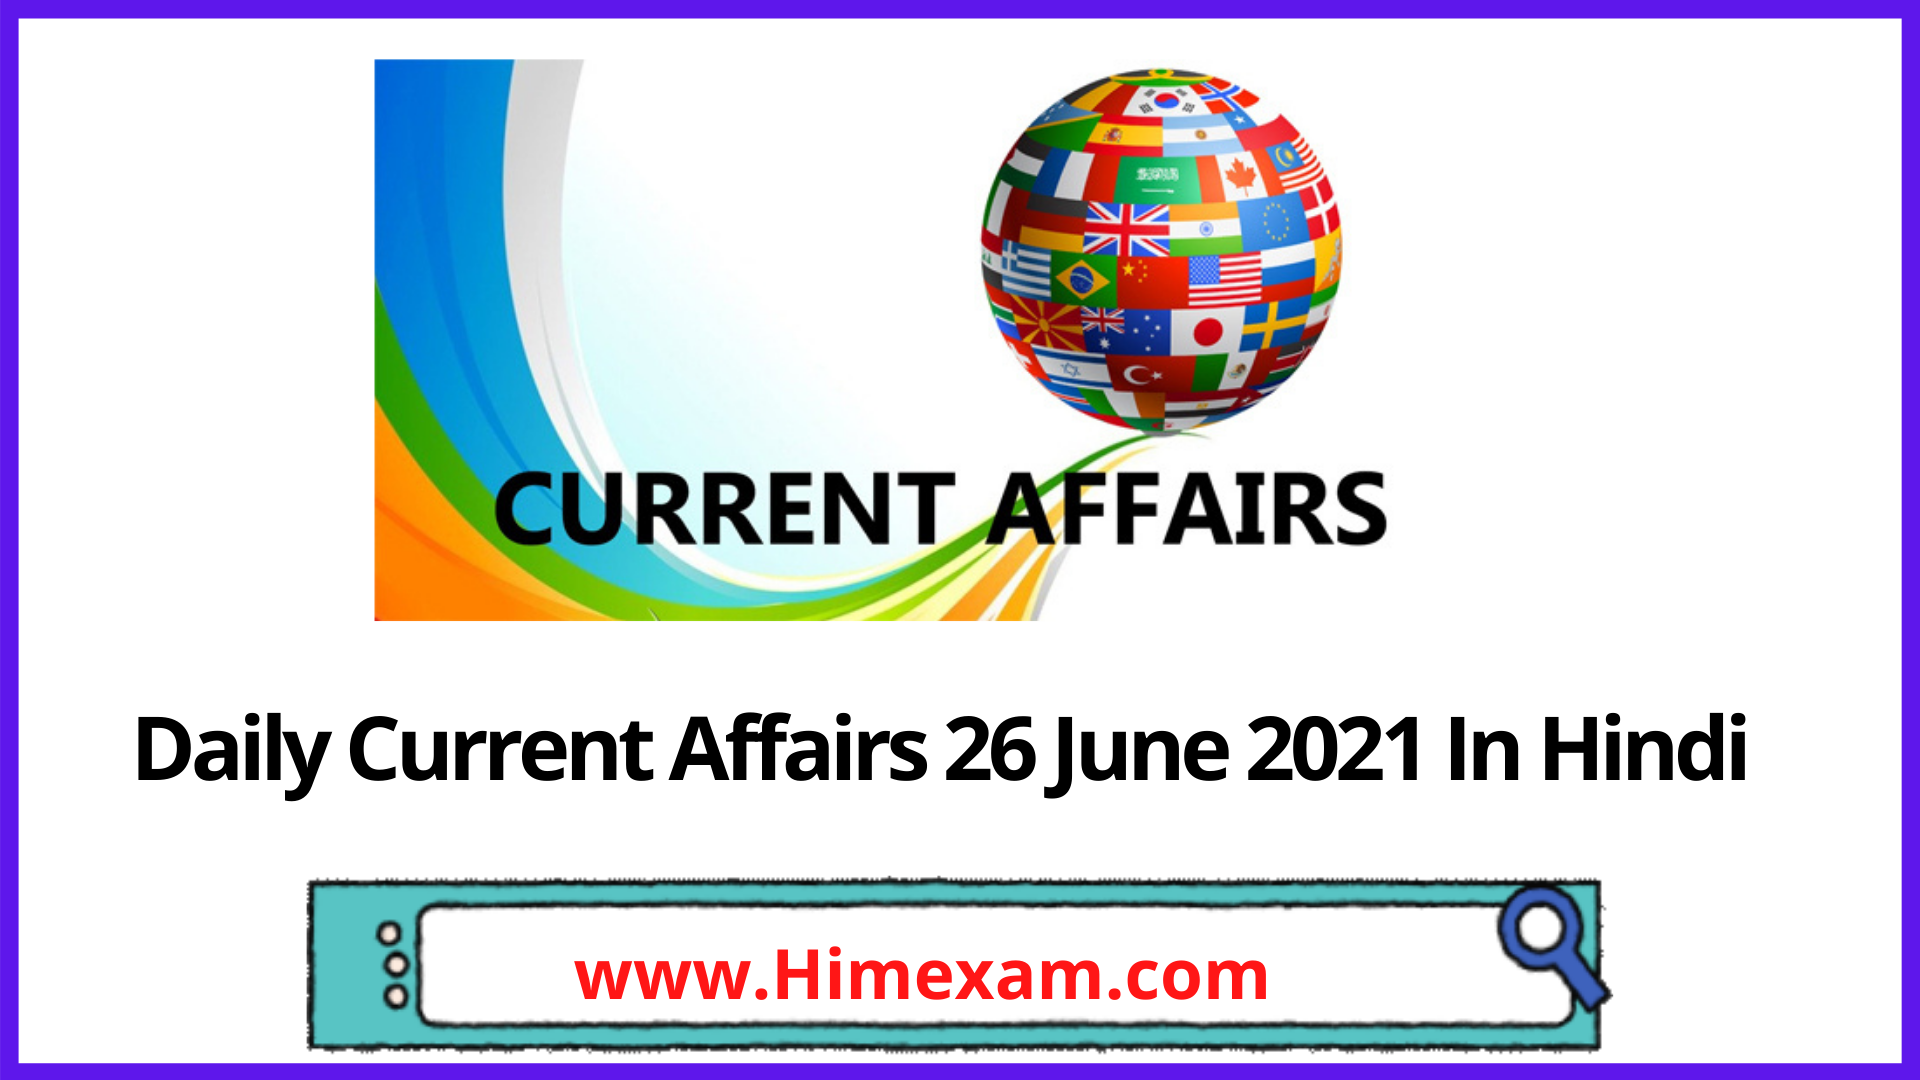 Daily Current Affairs 26 June 2021 In Hindi